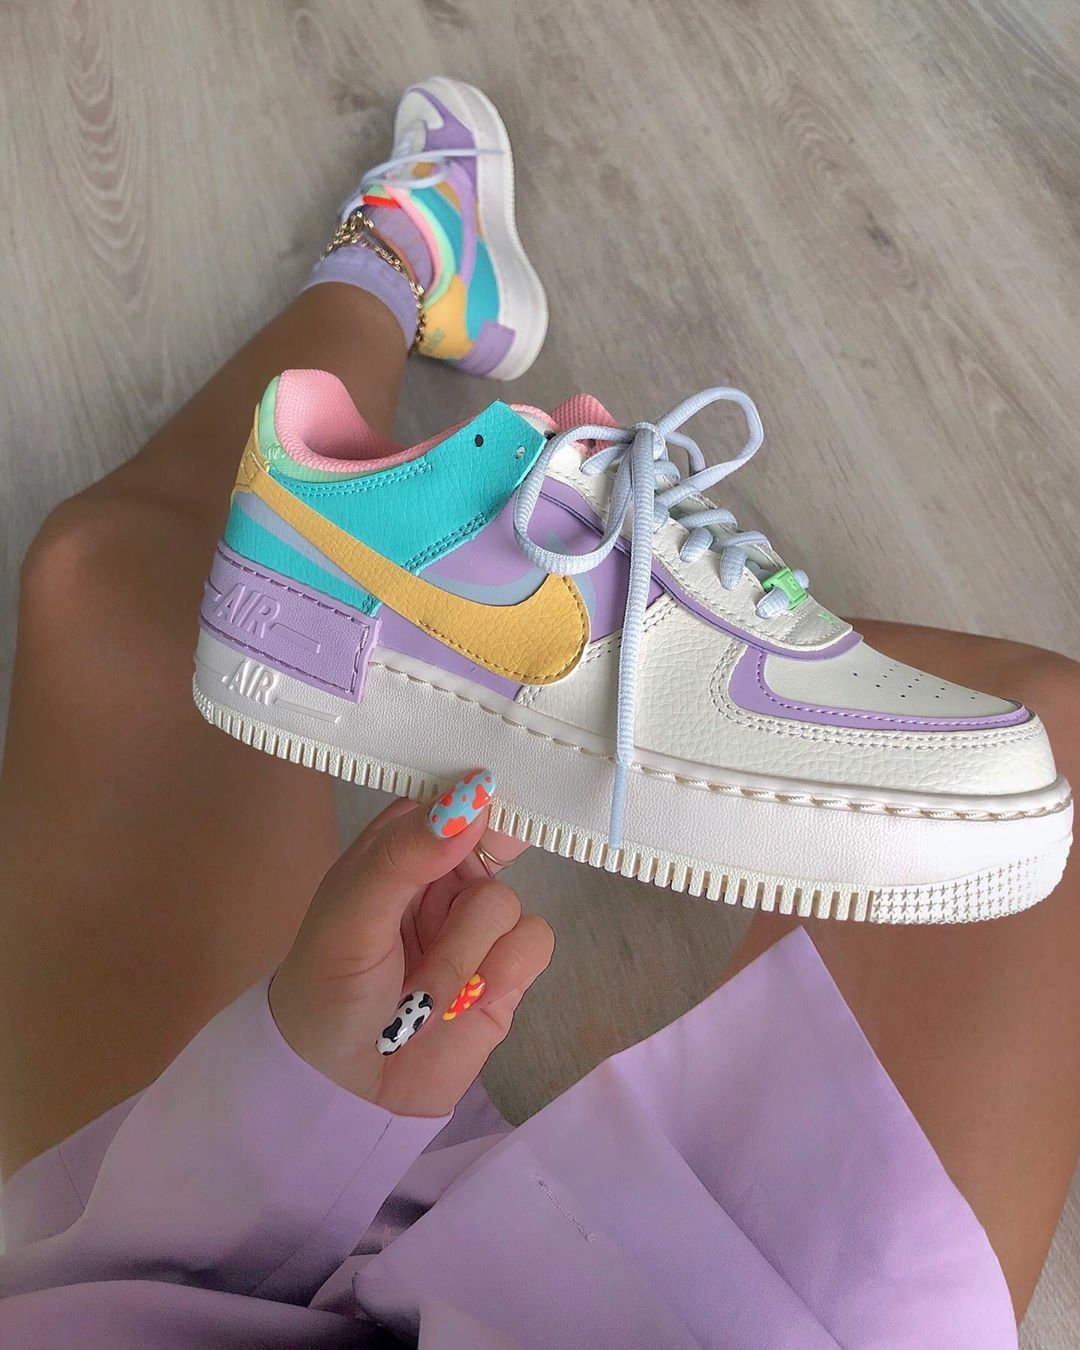 Back to the 90's with these amazing new sneakers from Nike